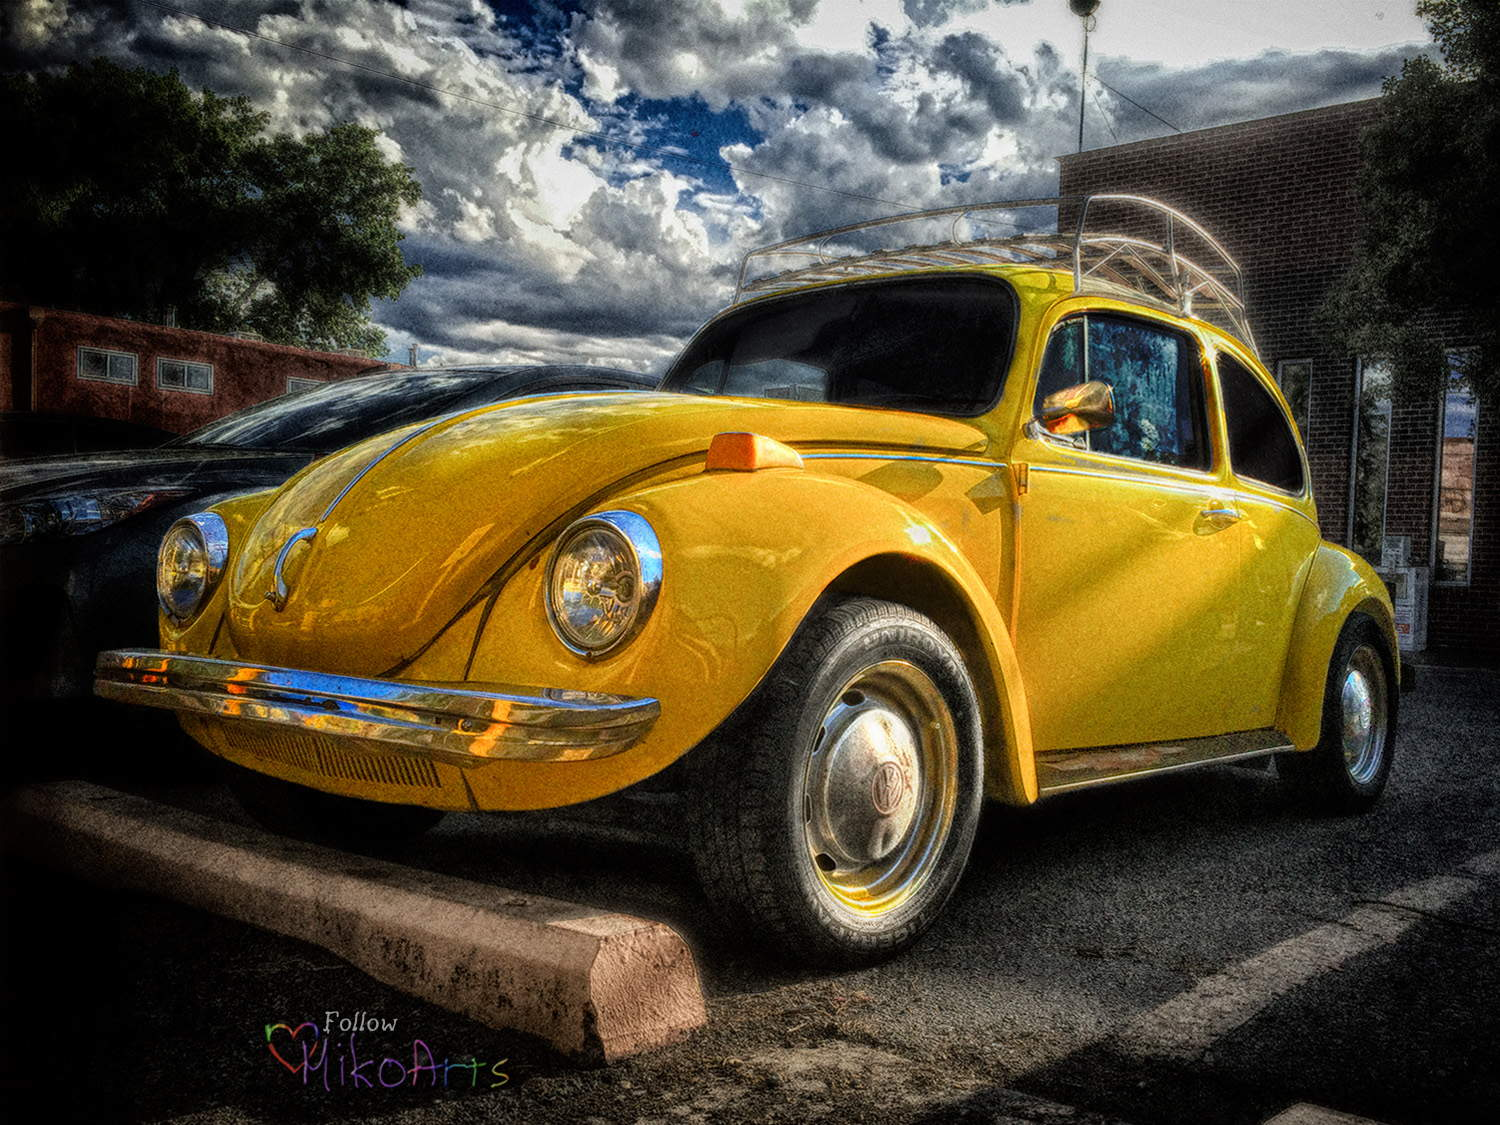 Photo Auto VW BUG Title is Yellow VW Gumdrop by Miko Zen MikoArts Copyright 2019 W